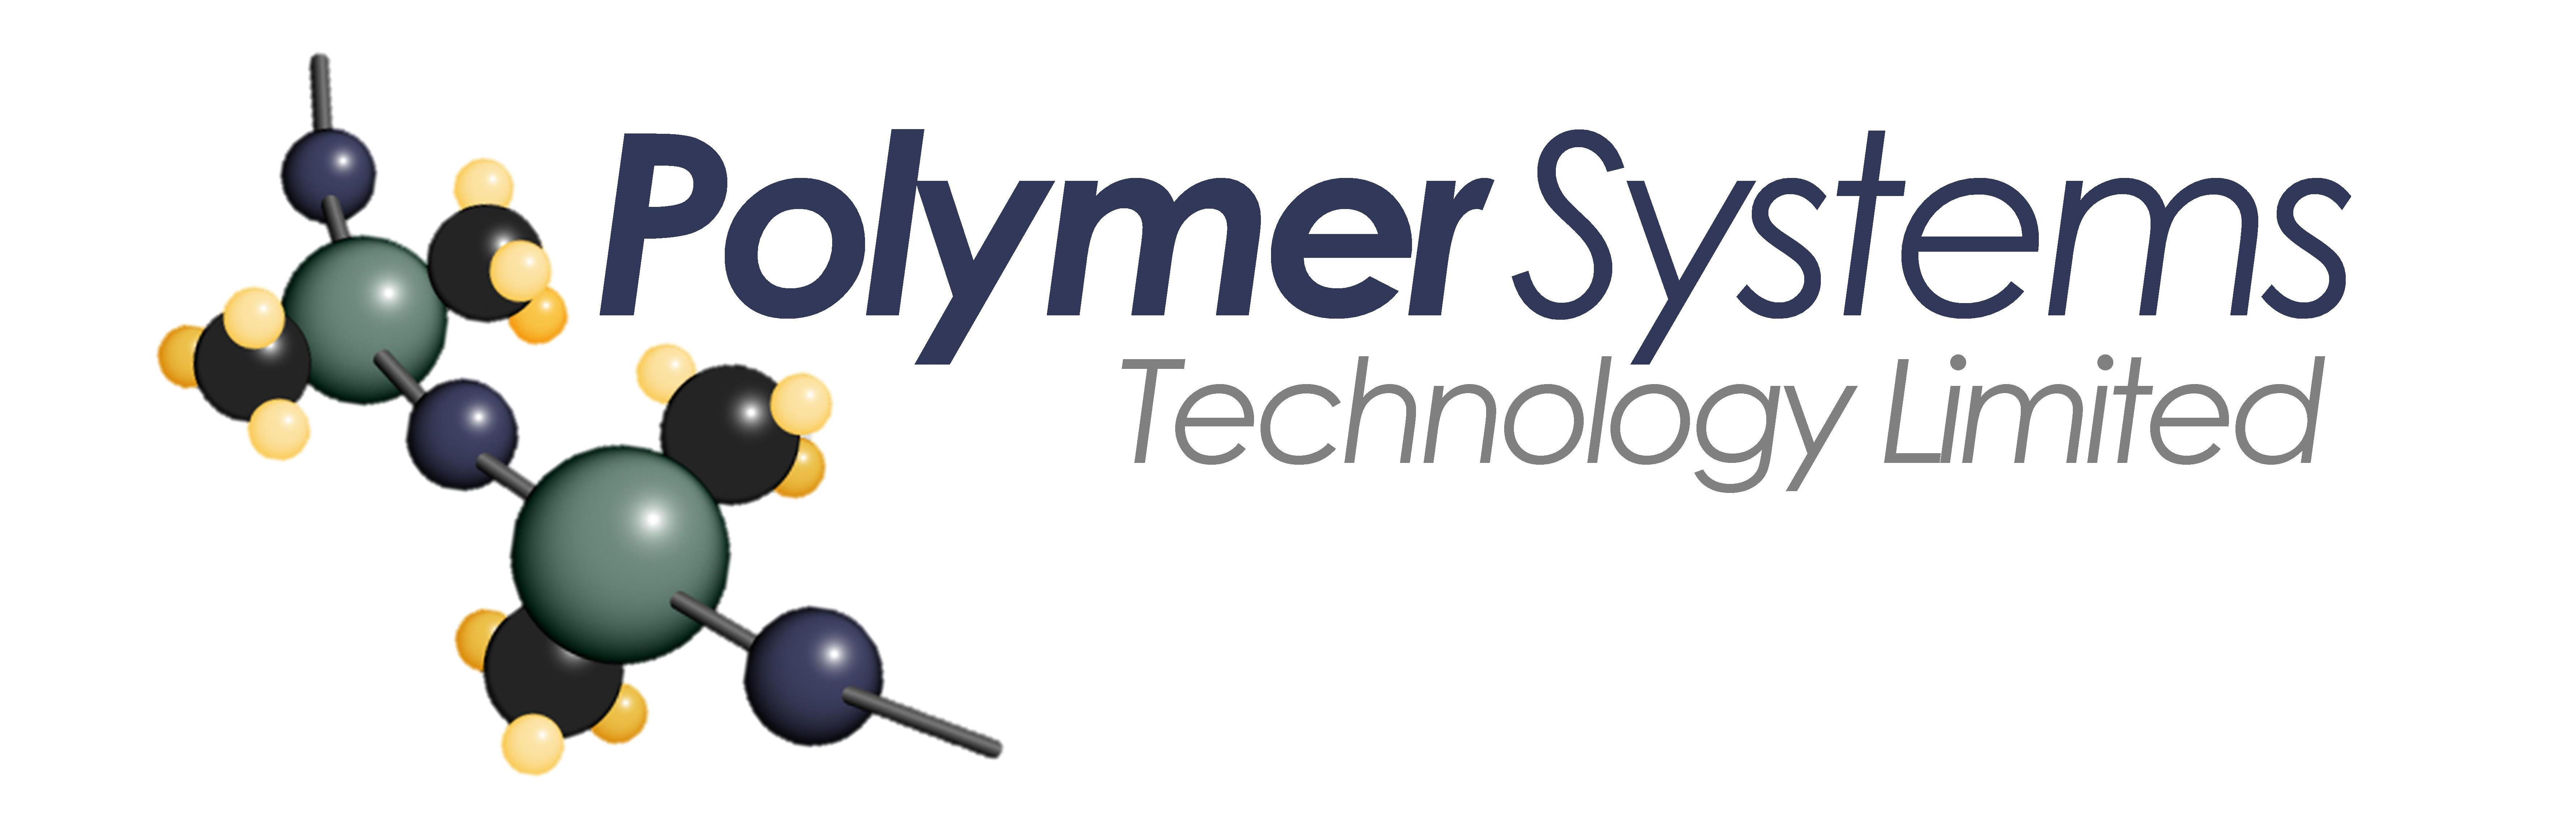 Polymer Systems Technology Ltd